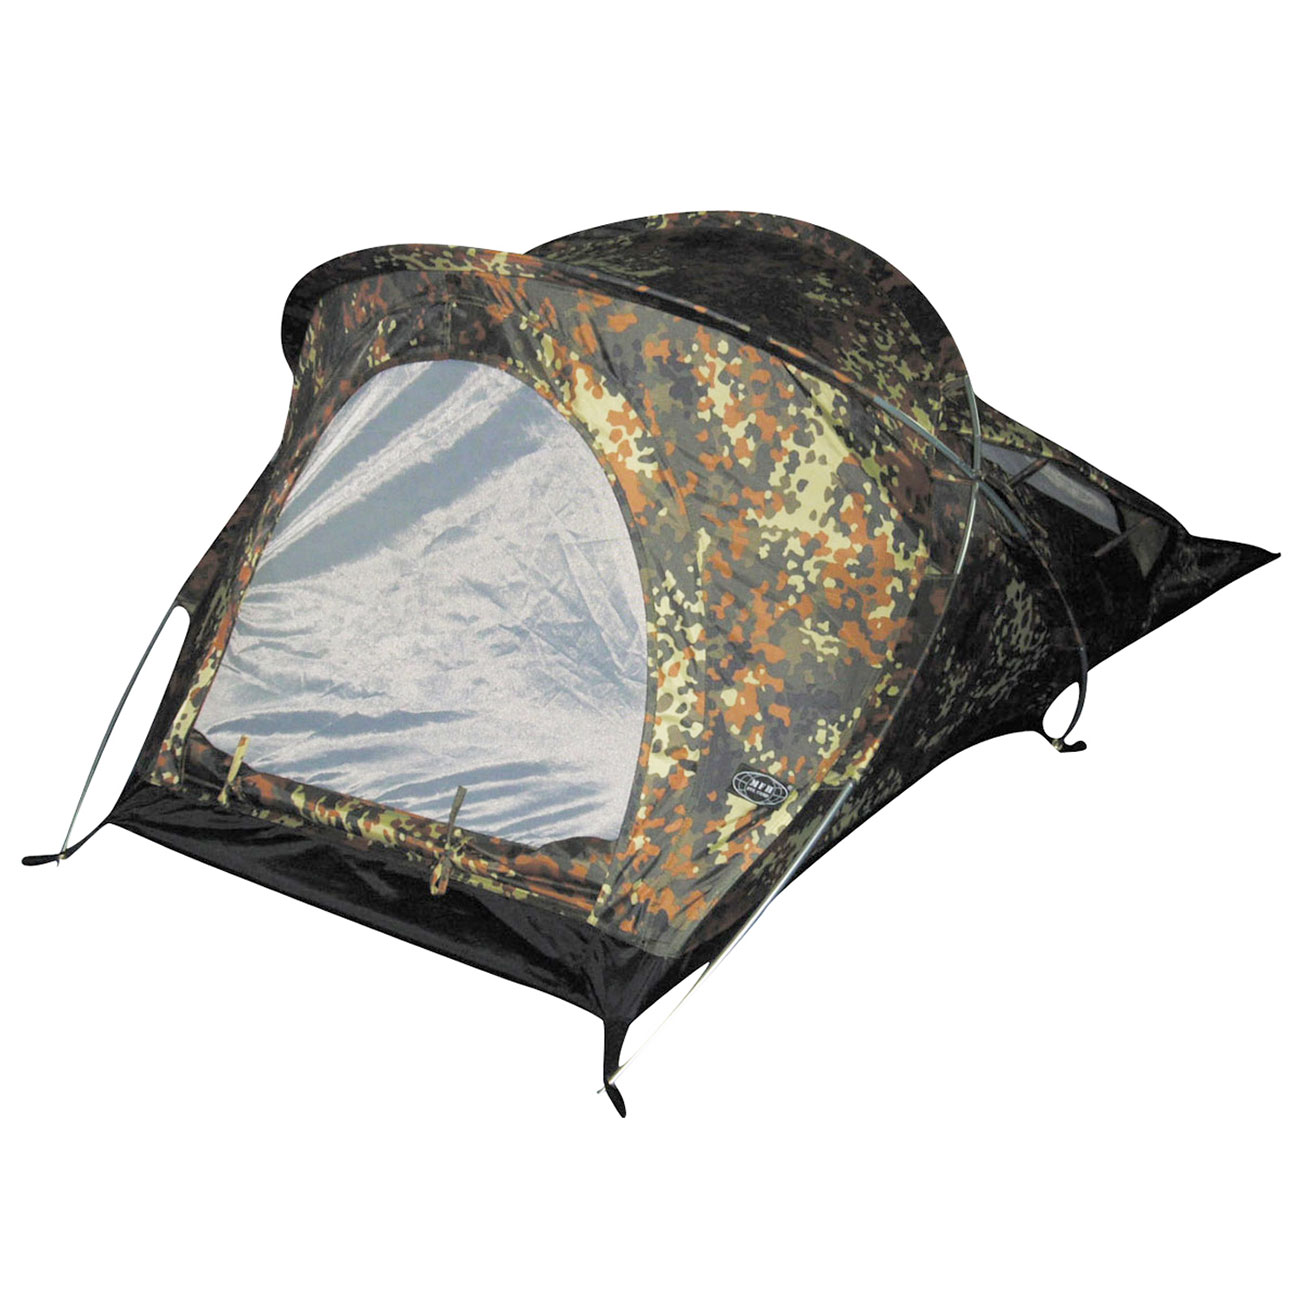 MFH Tunnelzelt Osser 1-Person flecktarn 0